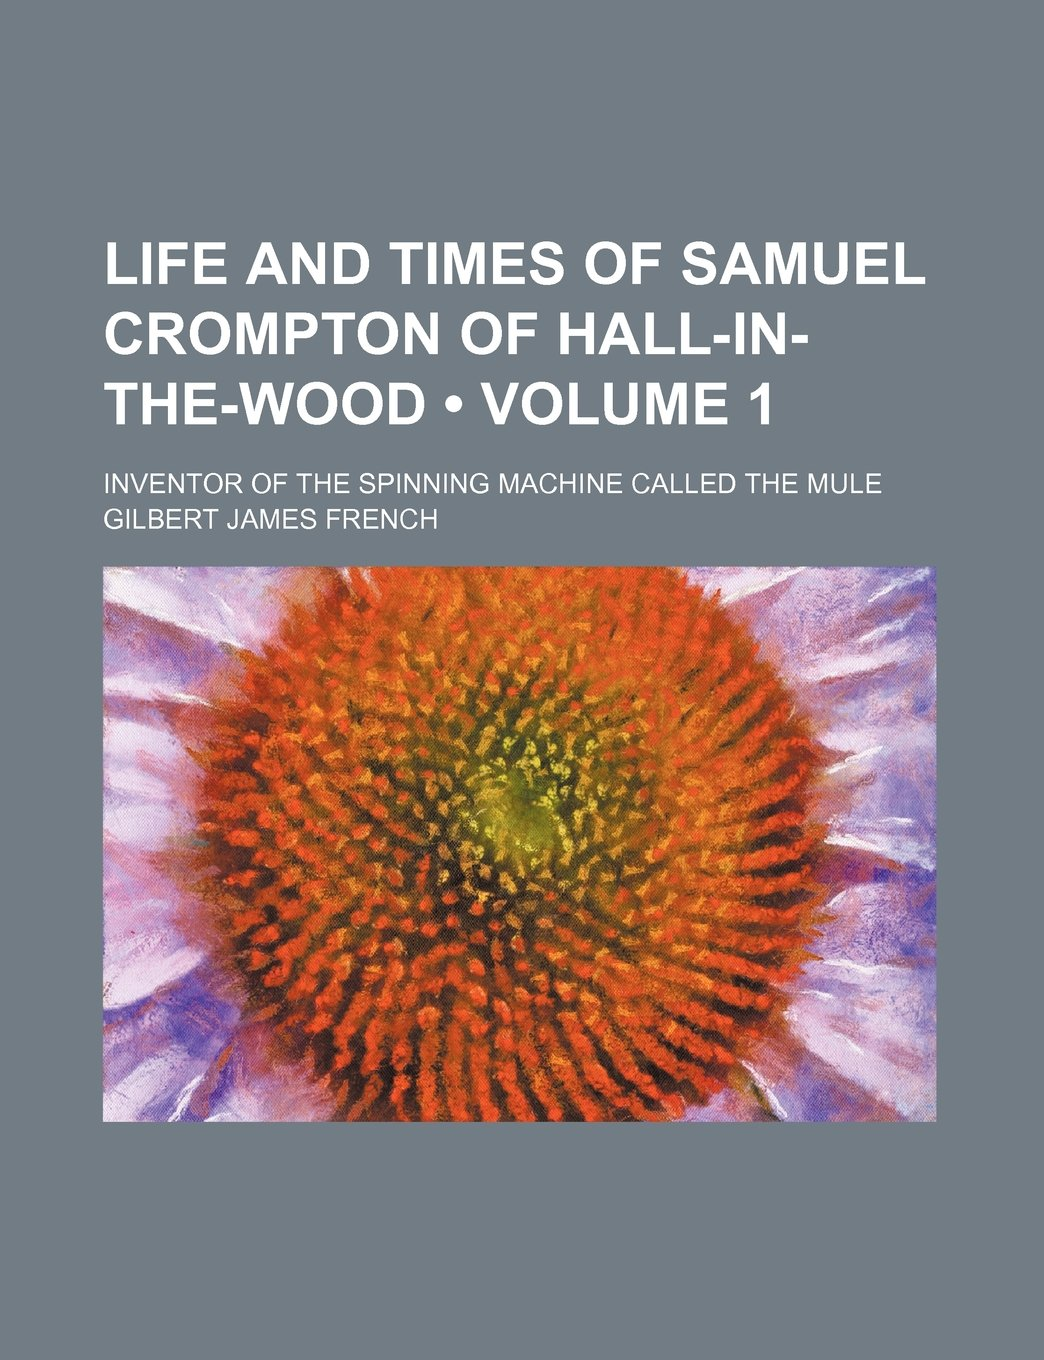 Life and times of Samuel Crompton of Hall-in-the-Wood Volume 1 ...